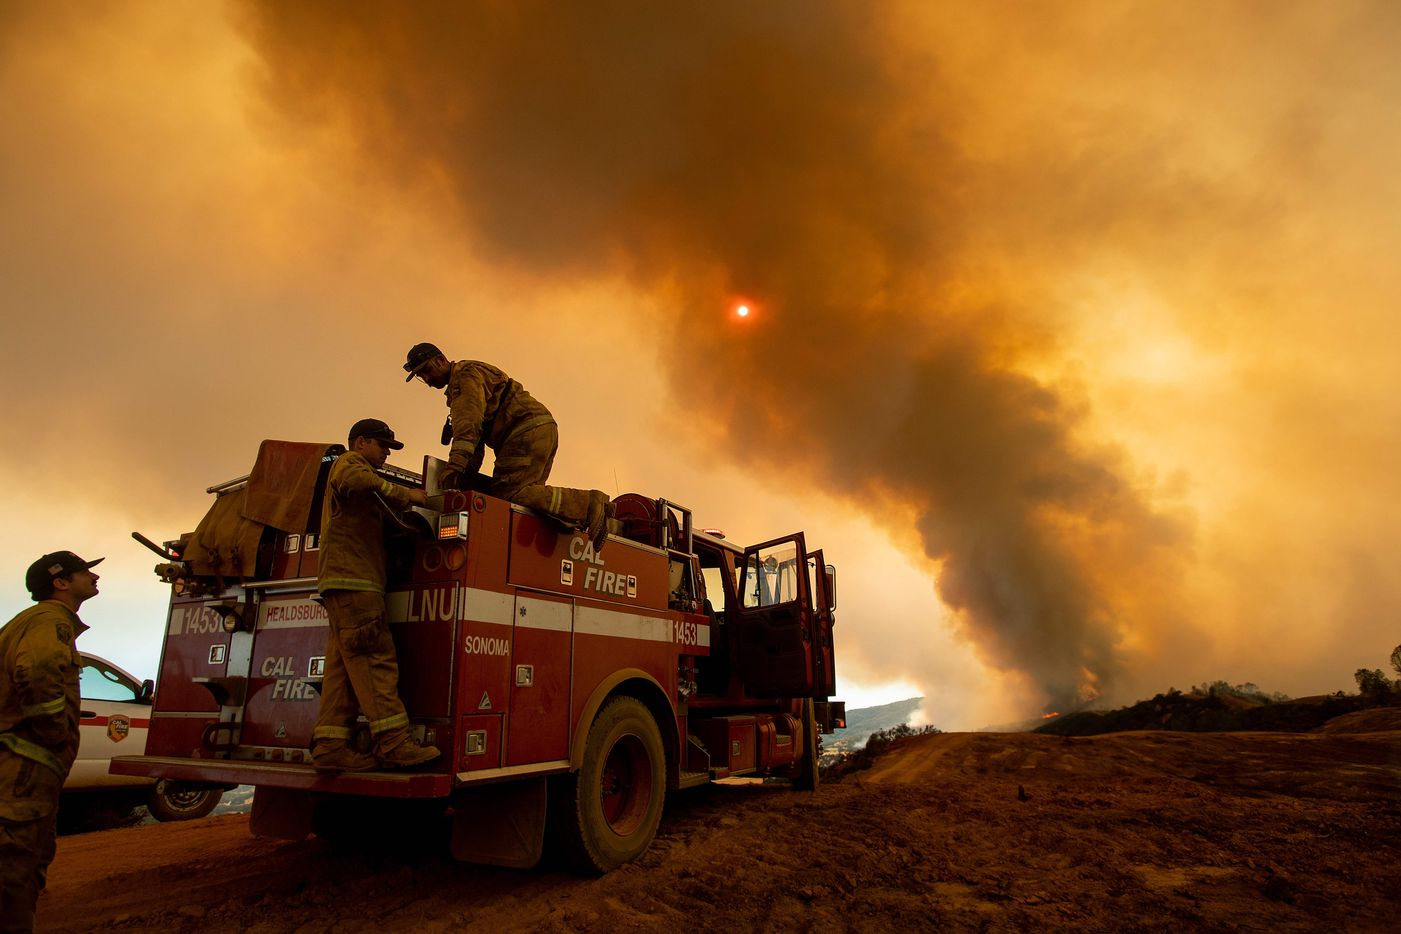 Firefighter Joe Smith retrieves supplies while battling the Ranch Fire, part of the Mendocino Complex Fire, burning along High Valley Rd near Clearlake Oaks, California, on August 5, 2018. Several thousand people have been evacuated as various fires swept across the state, although some have been given permission in recent days to return to their homes. / AFP PHOTO / NOAH BERGERNOAH BERGER/AFP/Getty Images